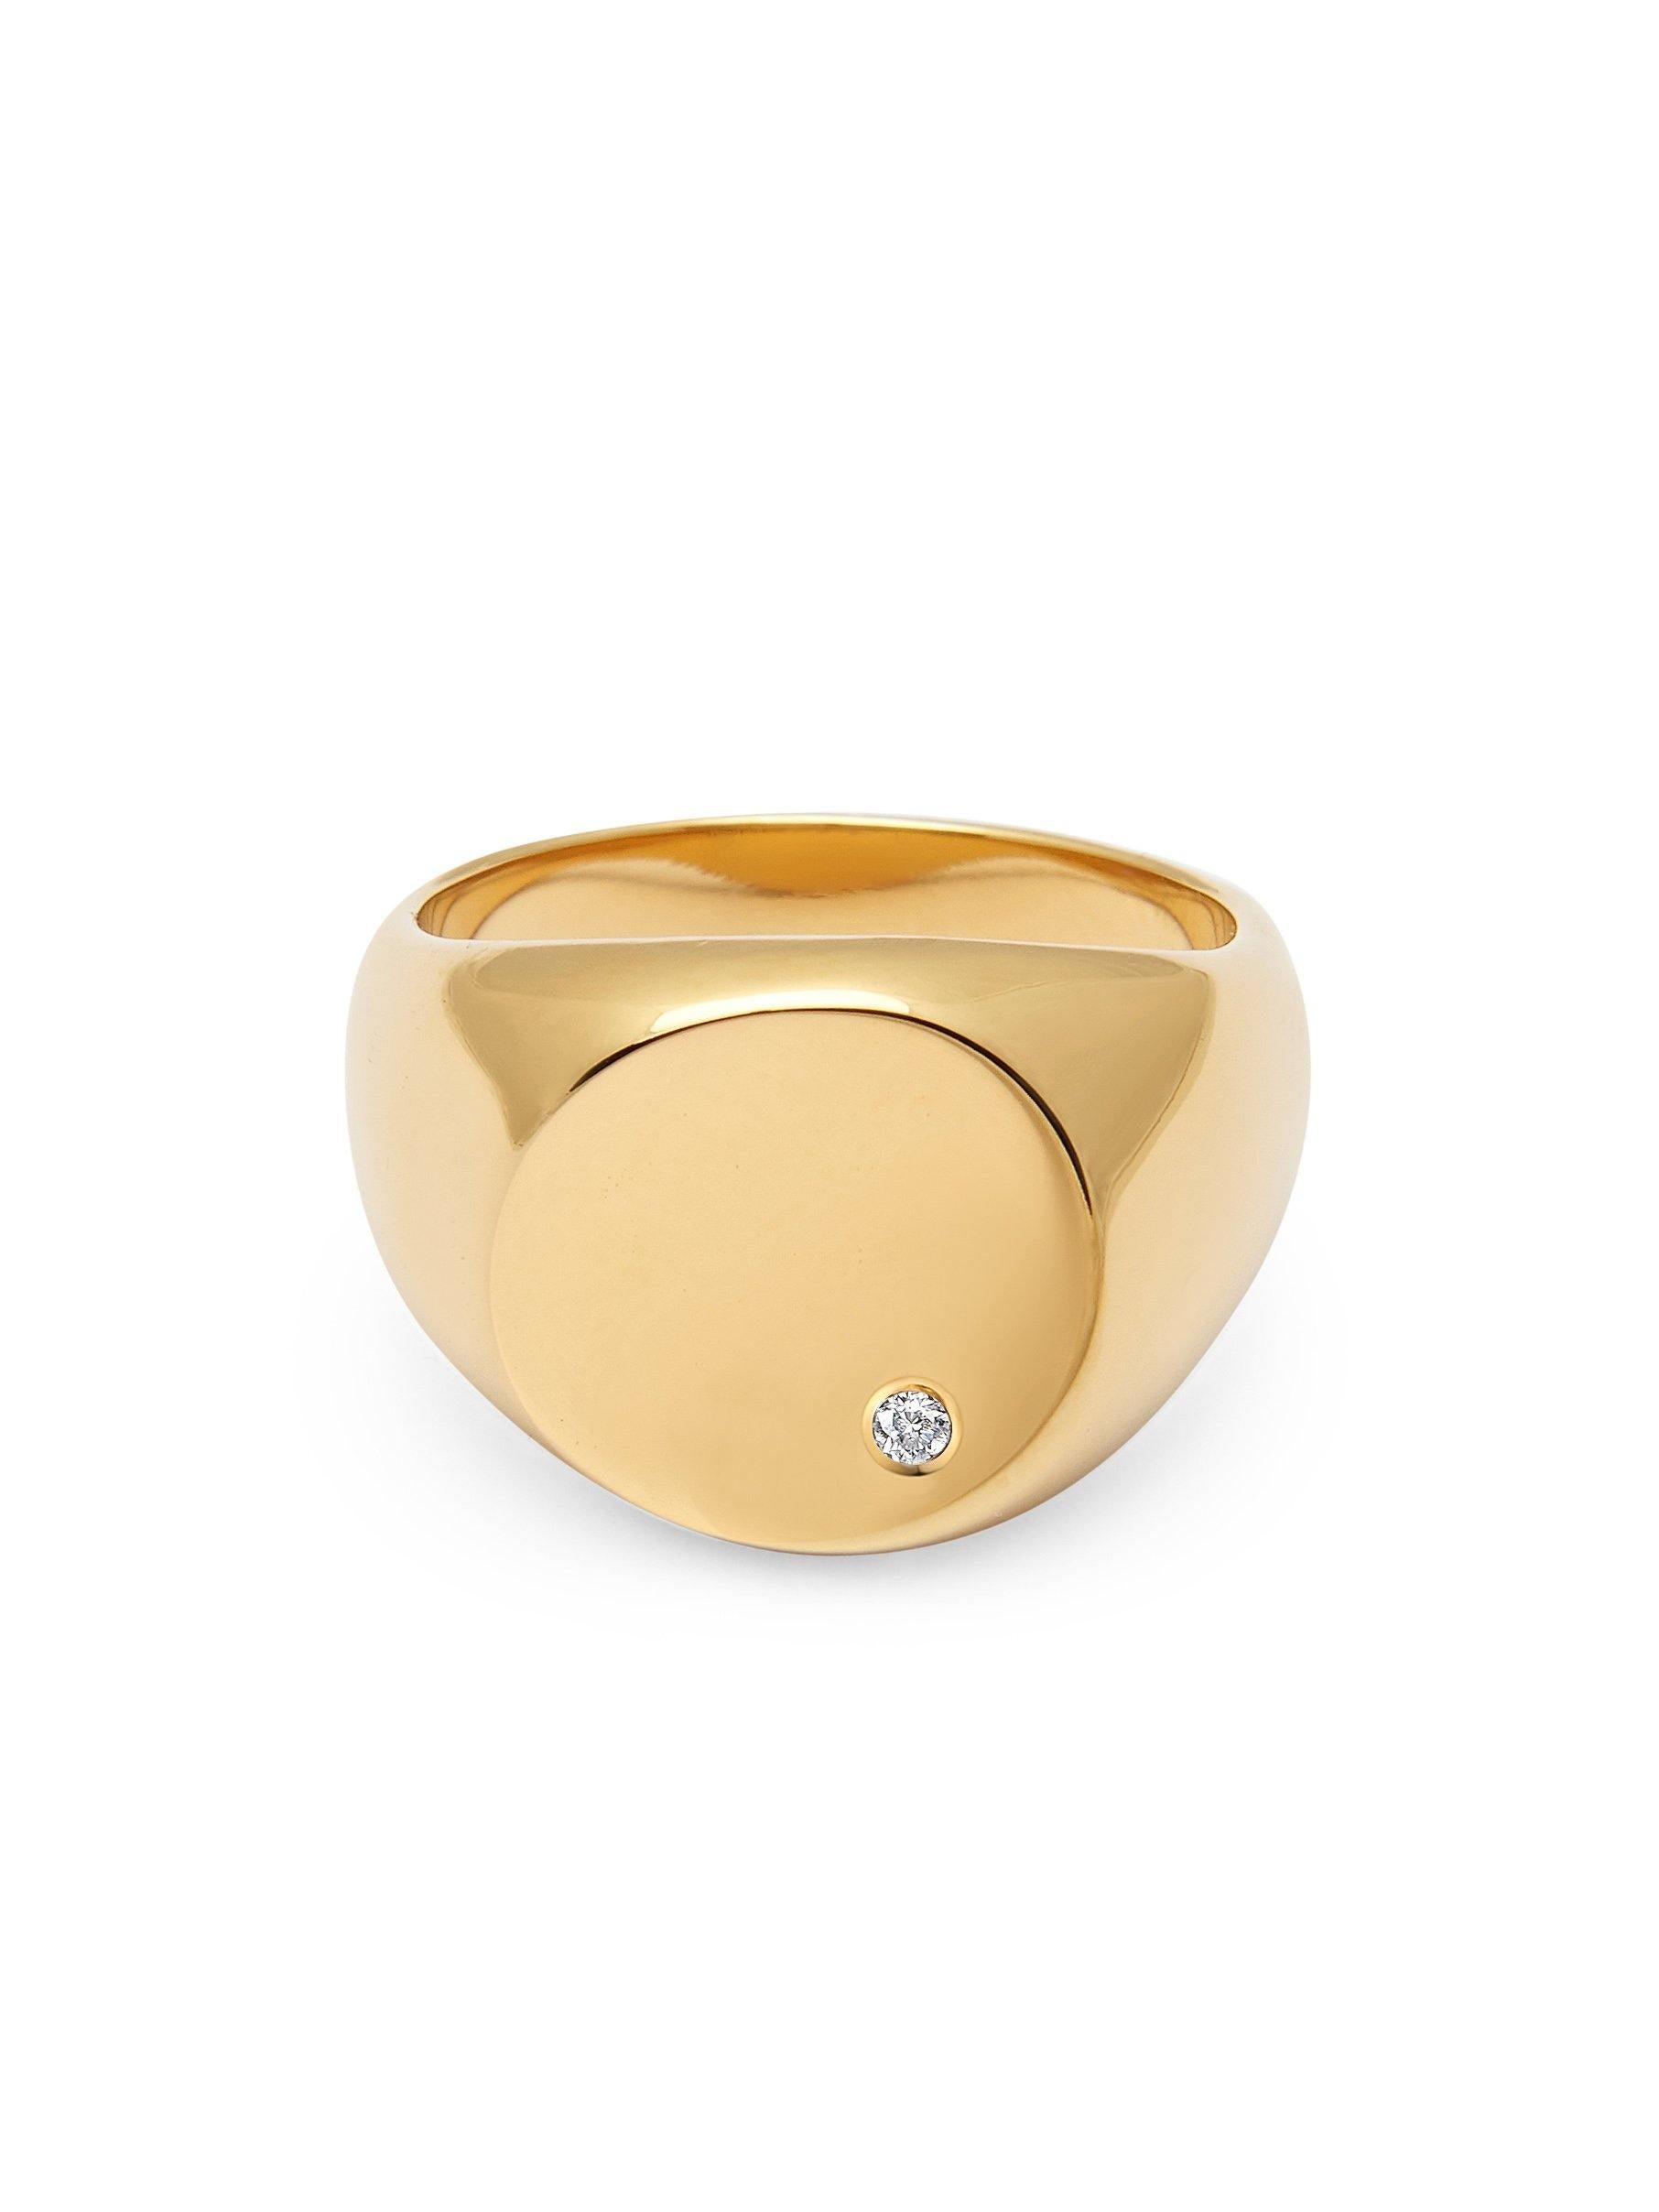 Skyfall Large Signet Ring - Nialaya Jewelry